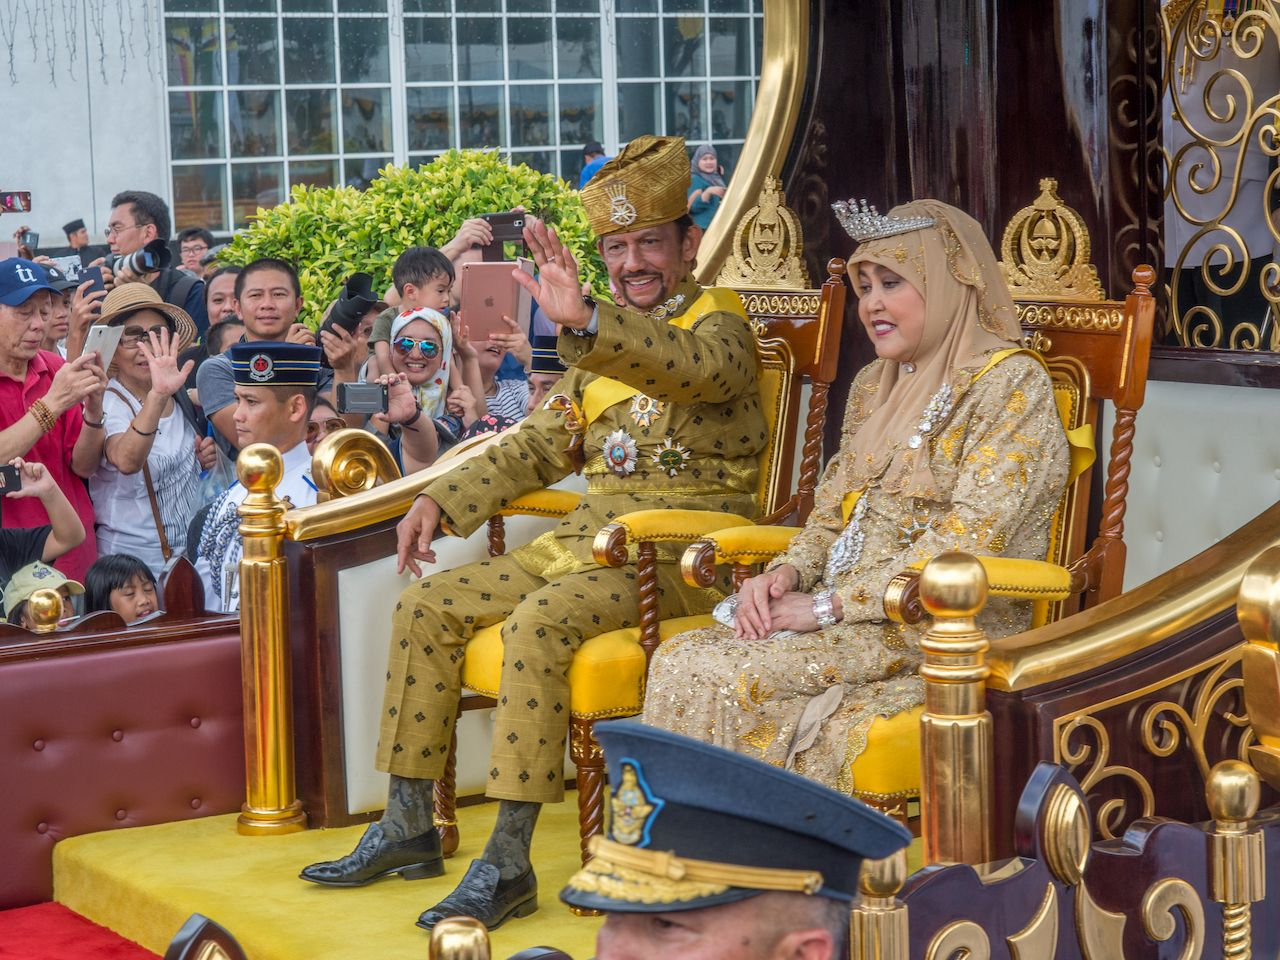 Brunei's Sultan marked 50 years on the throne with a glittering procession